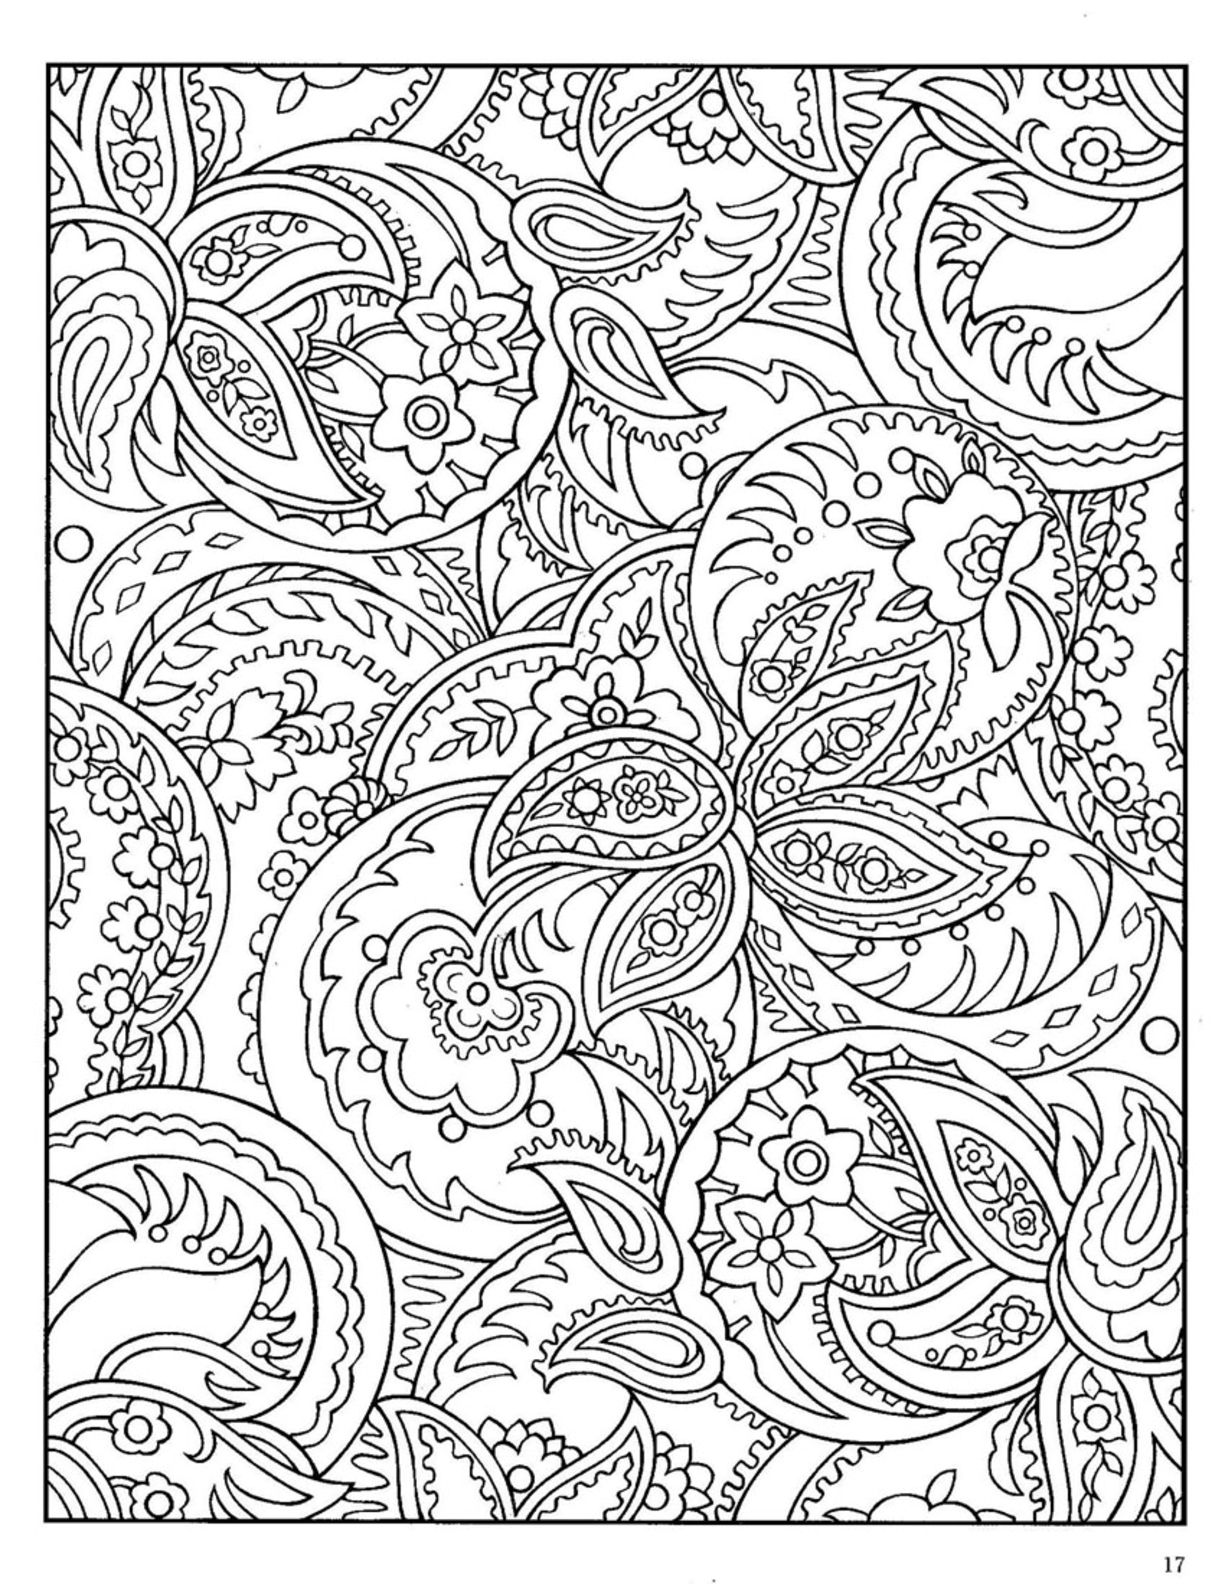 Dover Paisley Designs Coloring Book | Color me! | Pinterest ...